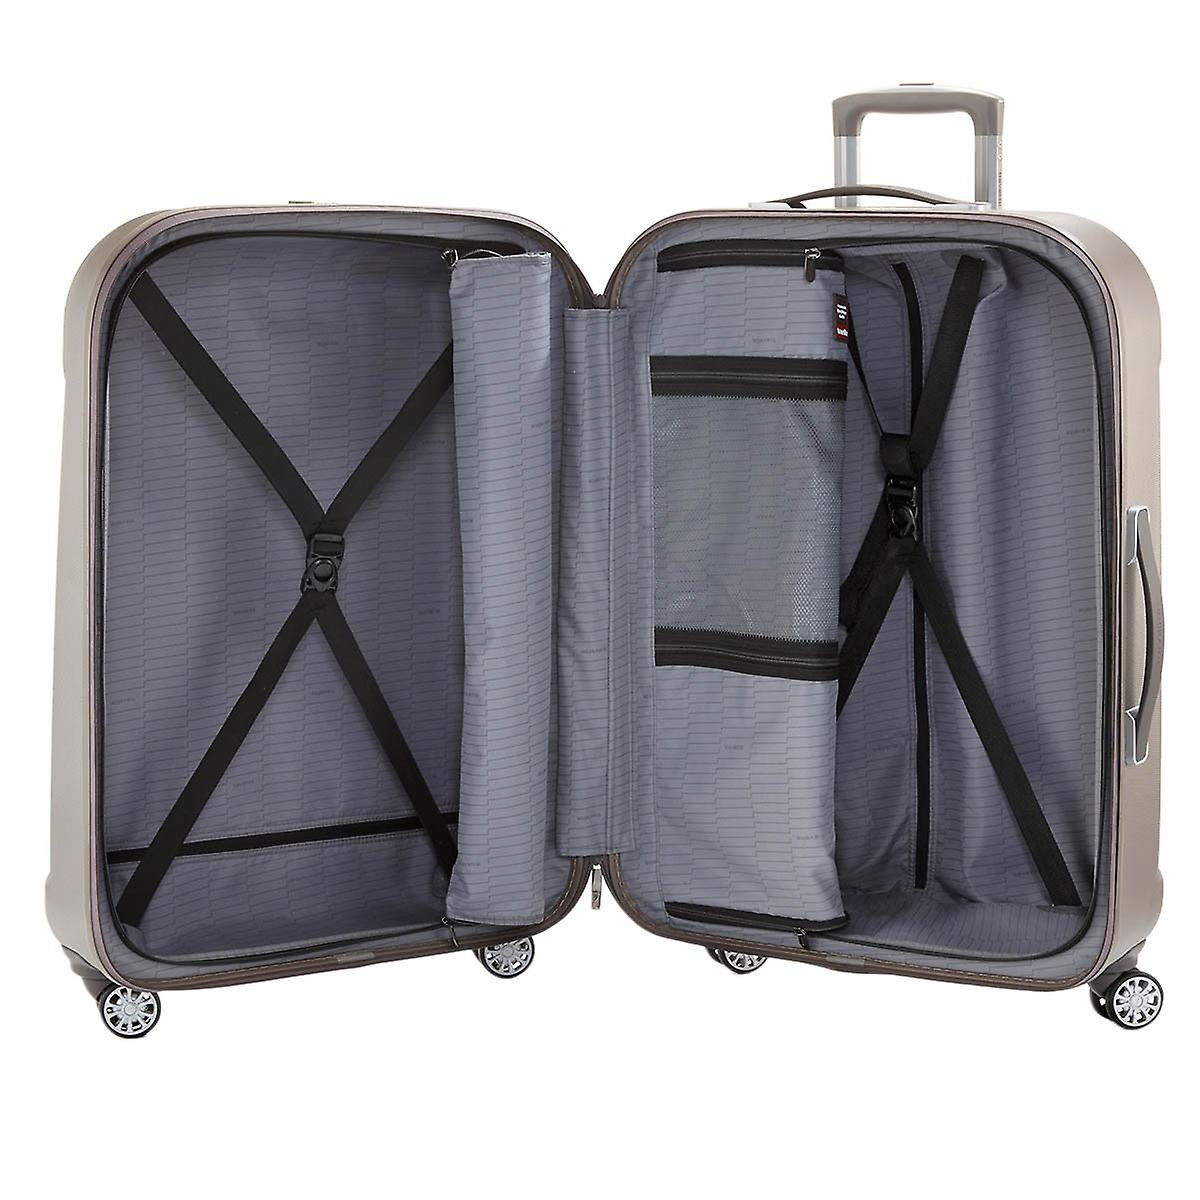 Reisen Travelite Elbe Two Trolley M 65 Cm Reisekoffer & Trolleys